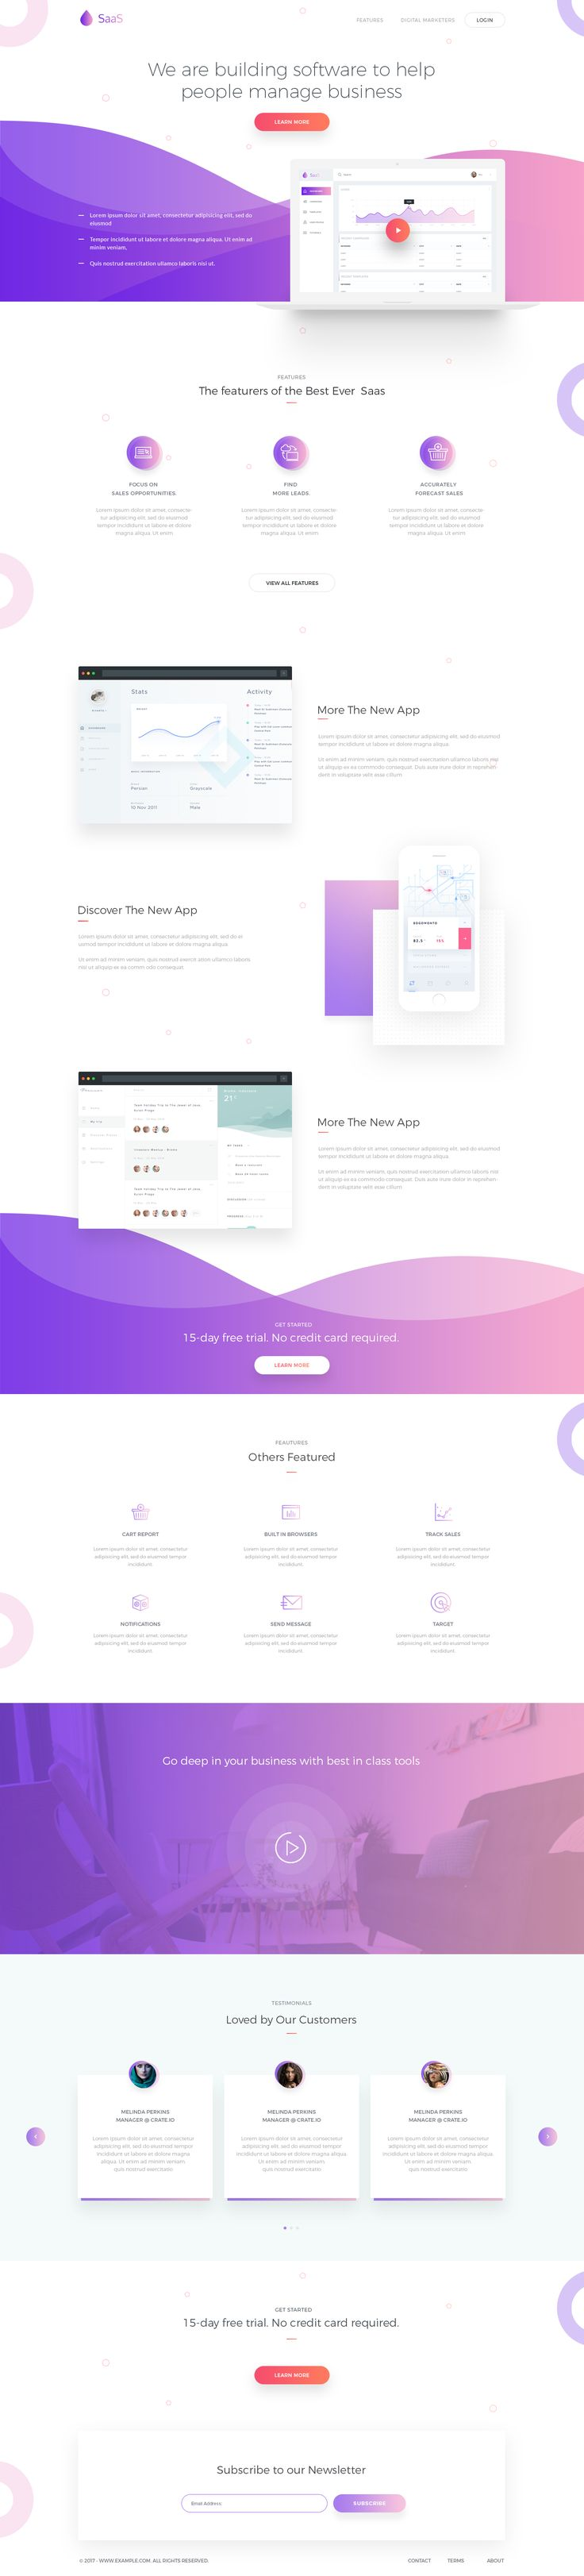 Dribbble - saas_2.png by Rono